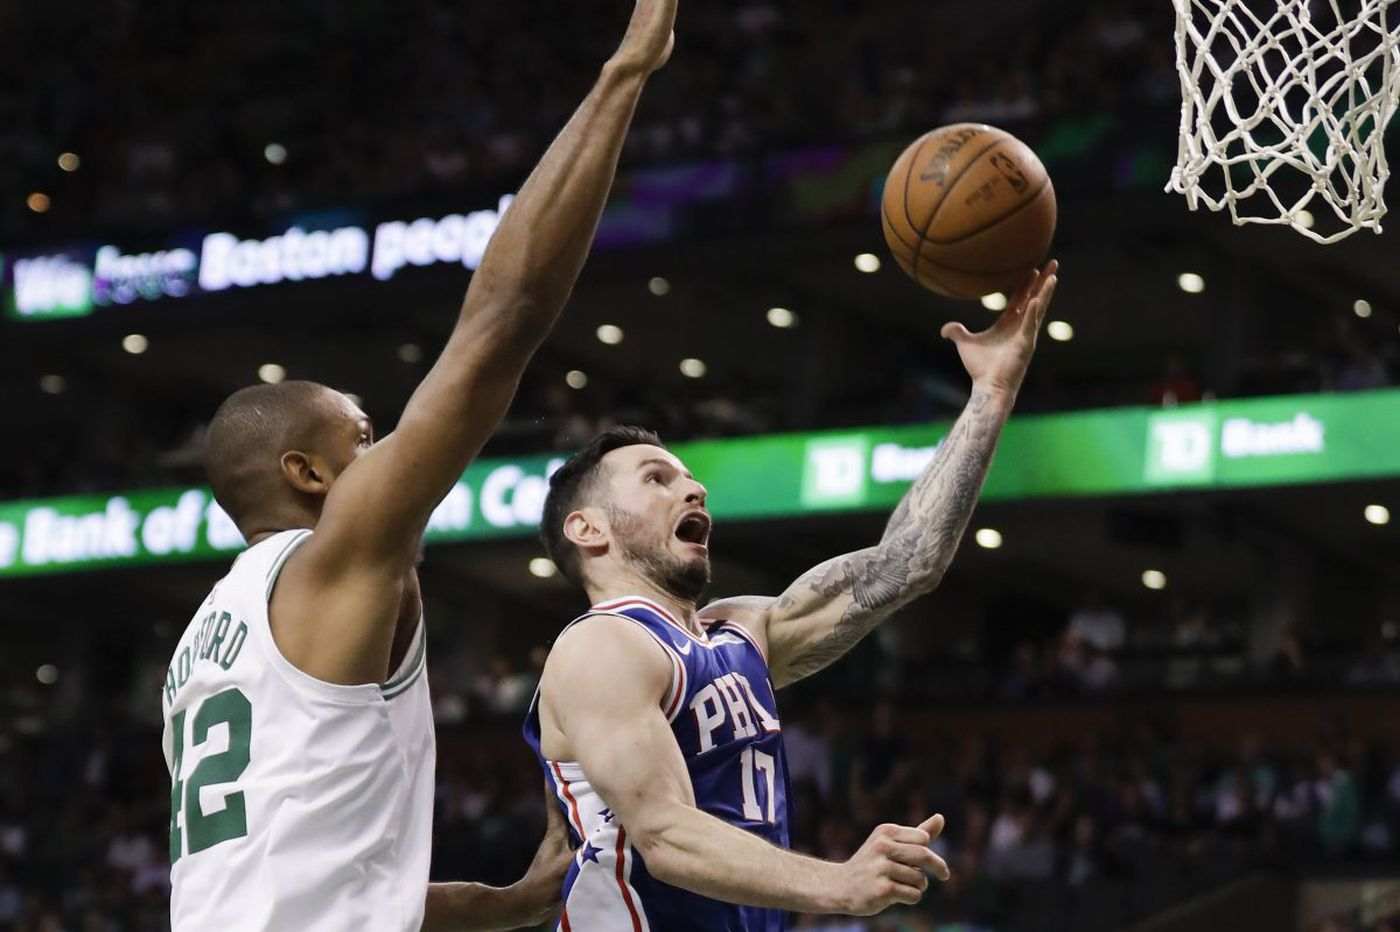 Sixers-Celtics Game 2 observations, best and worst awards: Ben Simmons' struggles, T.J. McConnell's great game and a blown lead